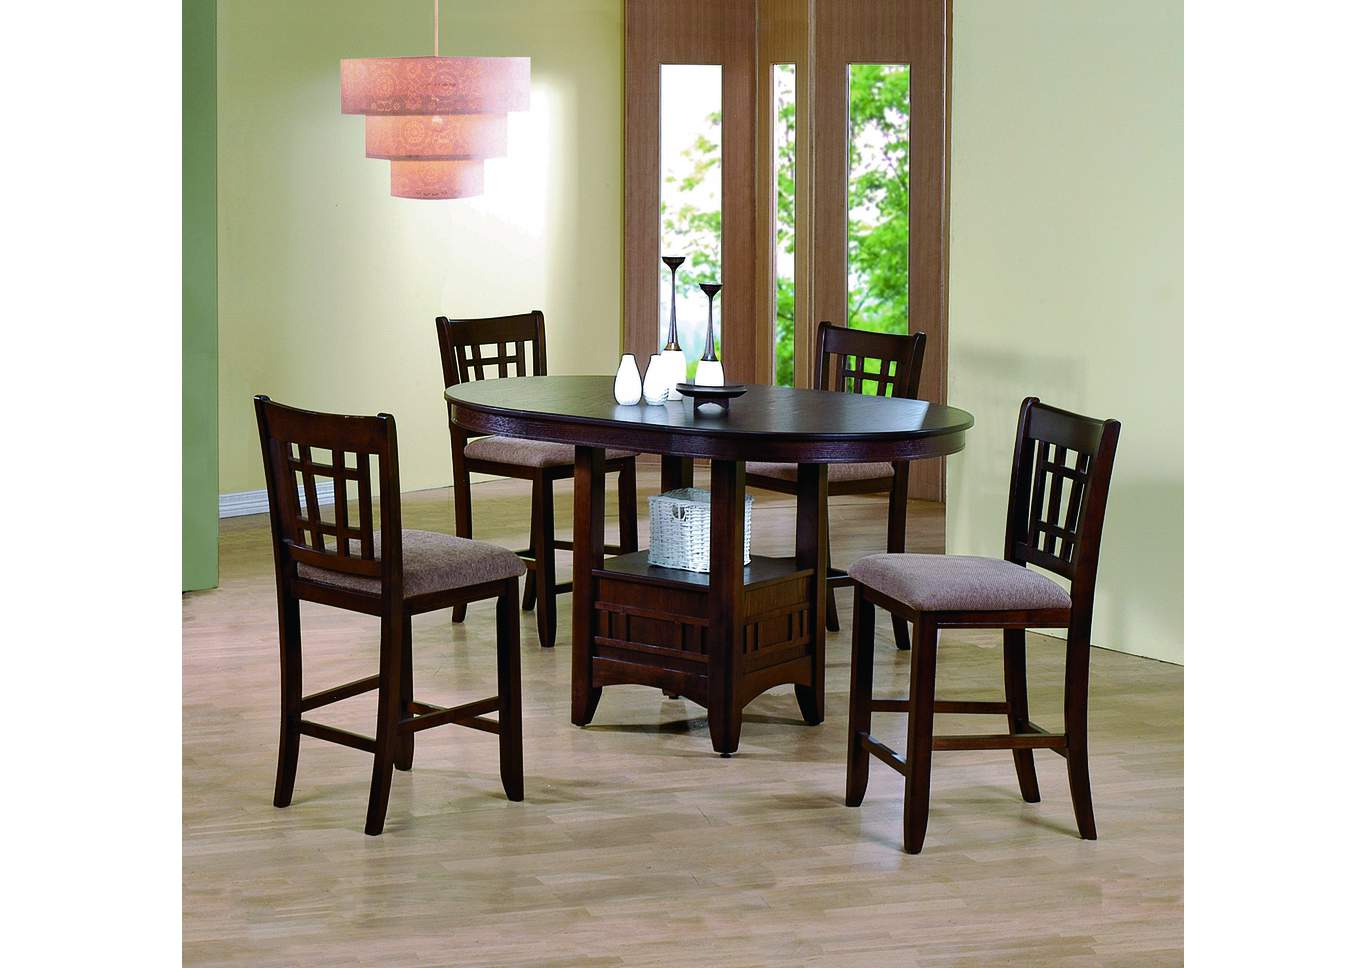 Empire Counter Height Dining Table W 4 Side ChairsCrown Mark